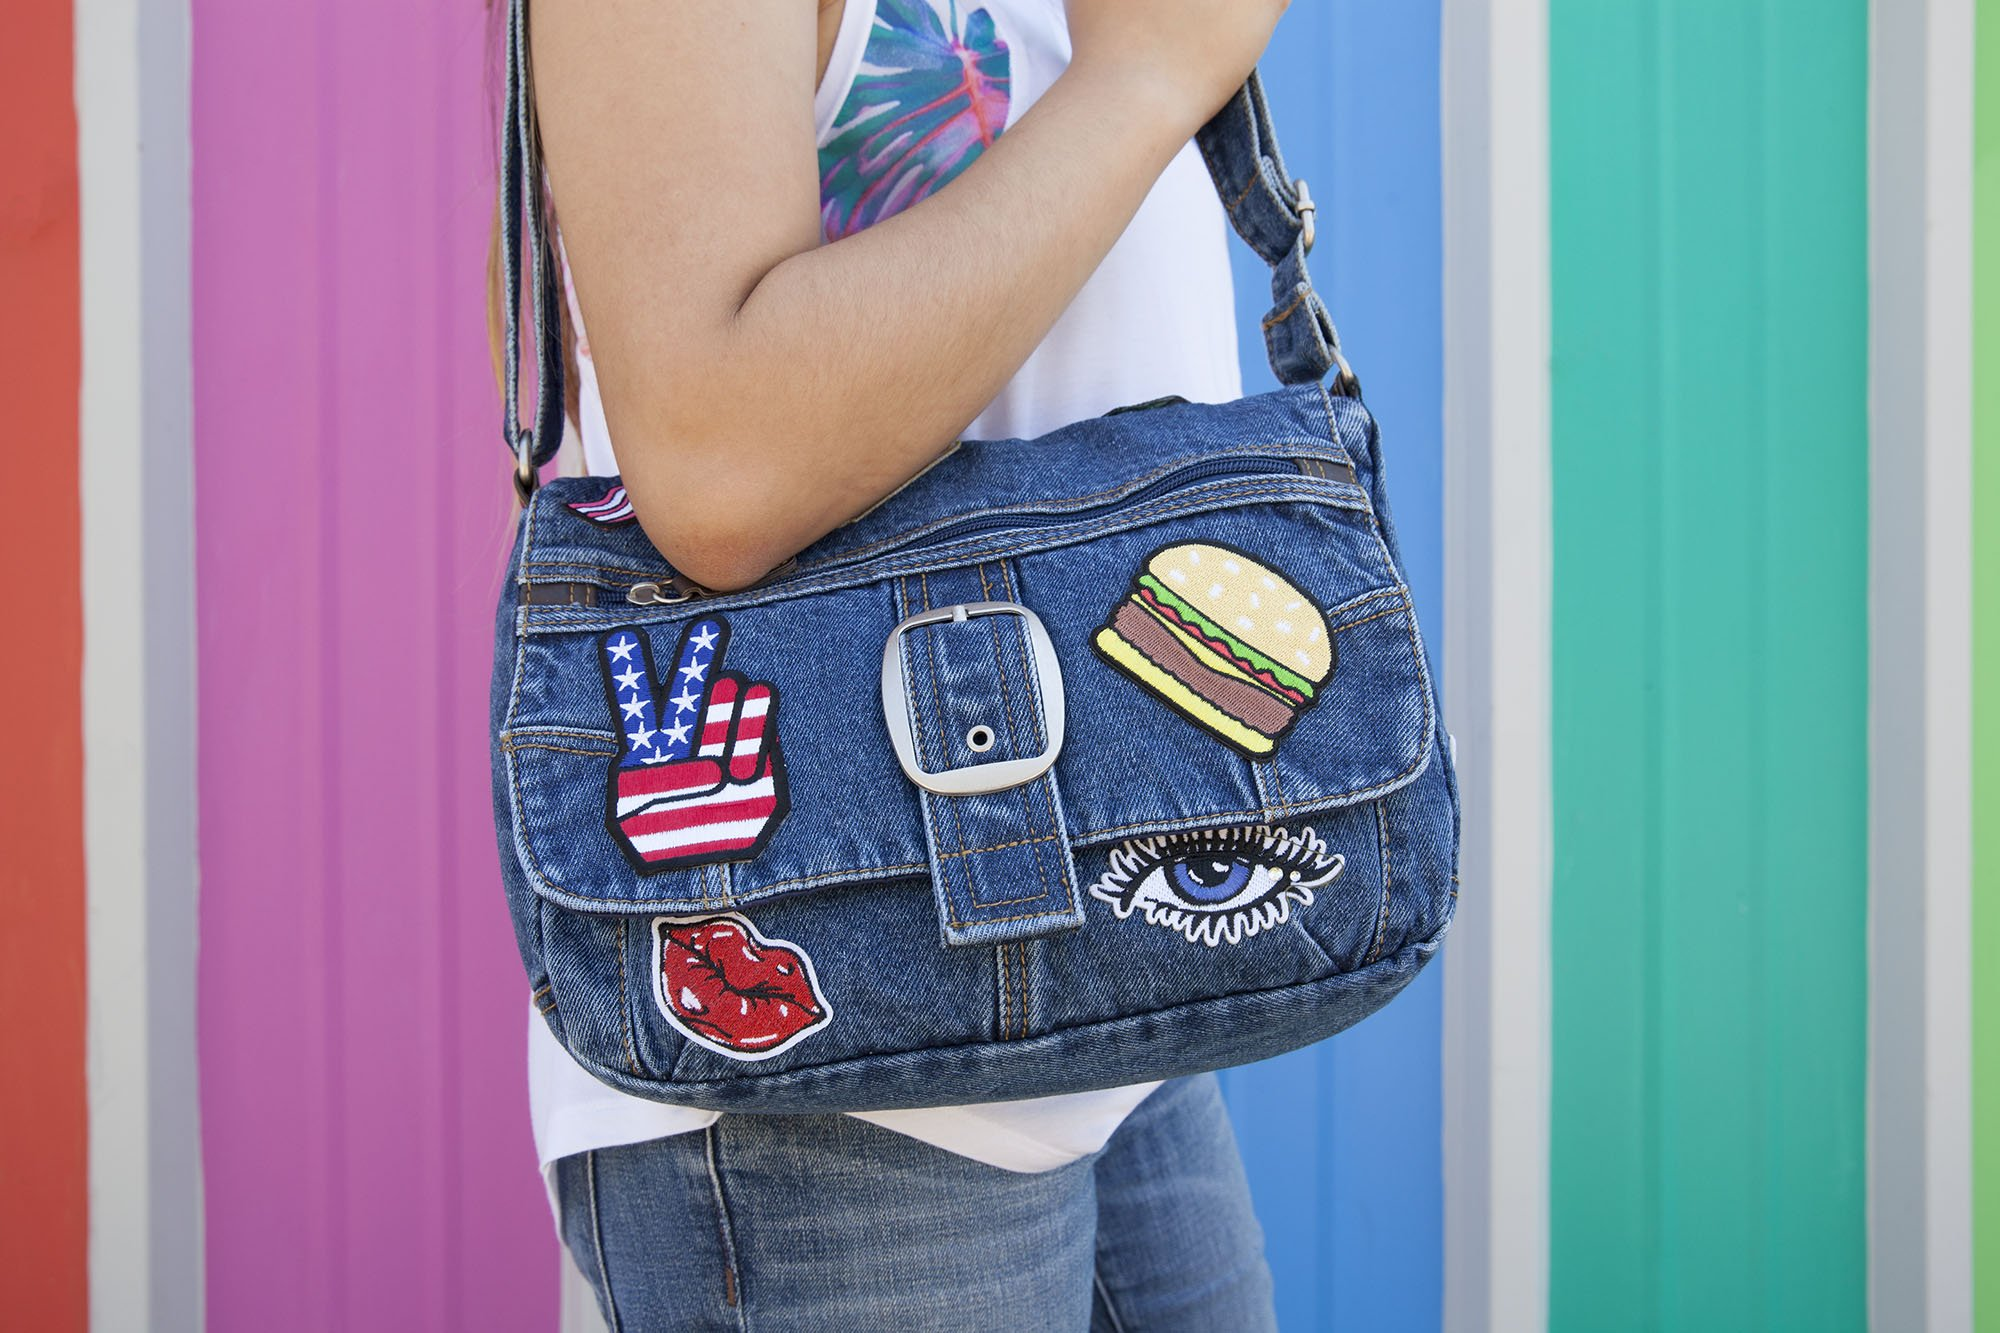 featured image of Personalize Your Denim with Patches and Fabric Glue article